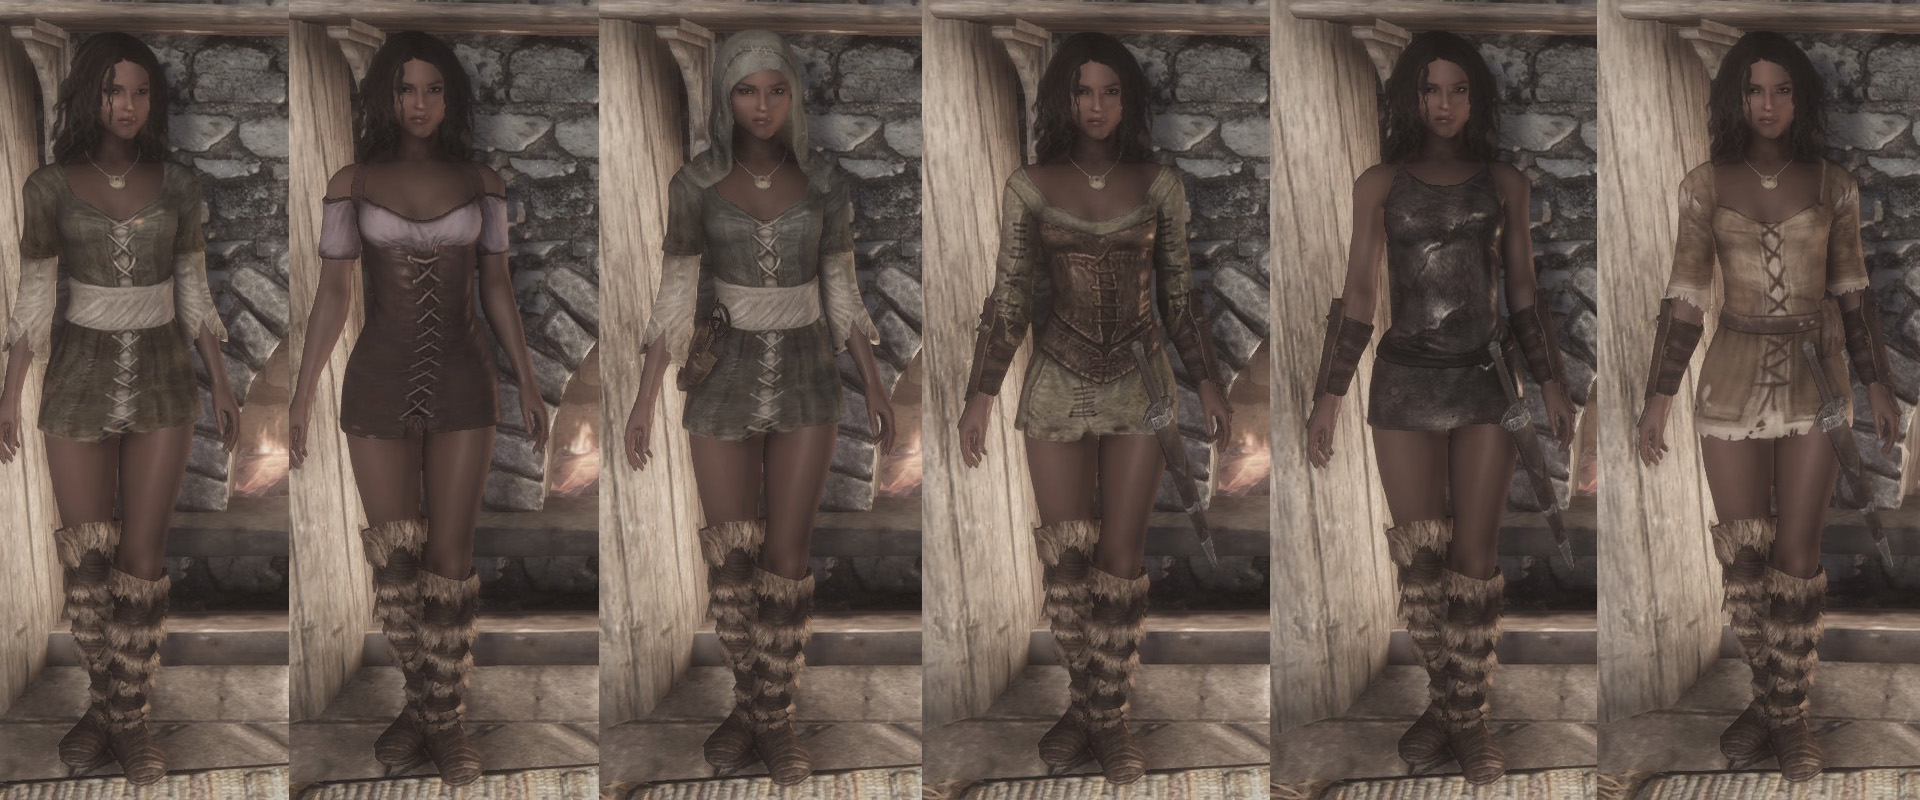 Skyrim Hdt Clothing Replacer - newhairstylesformen2014.com